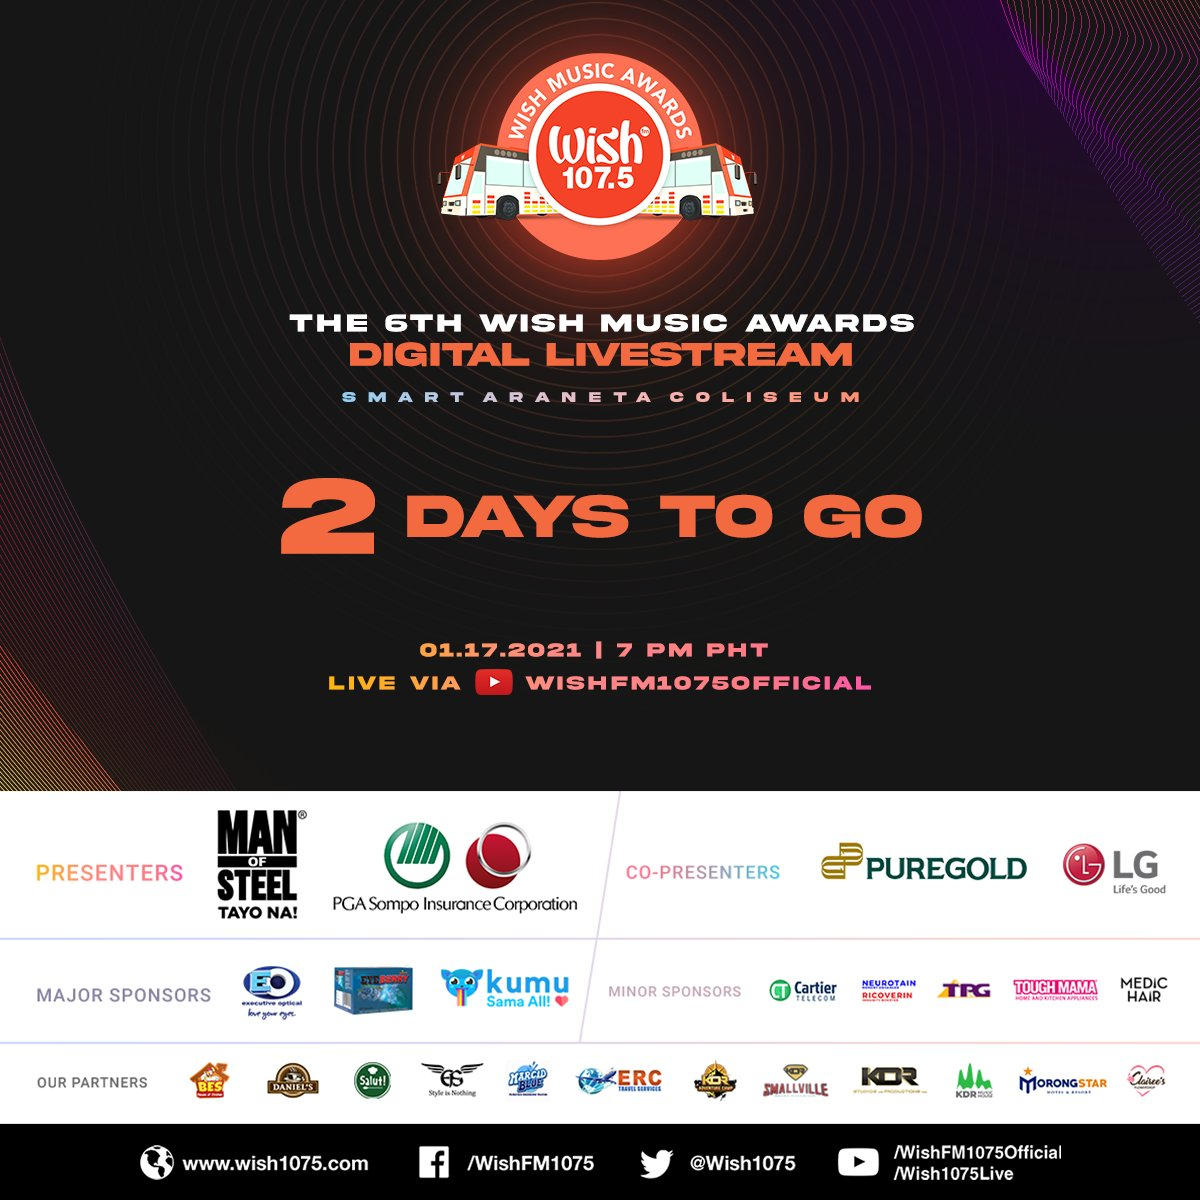 We're down to 2 days 'til the much-awaited @wish1075 Music Awards! 🤩  Don't forget to save this link: ! See you virtually 💙 #TheBigDome